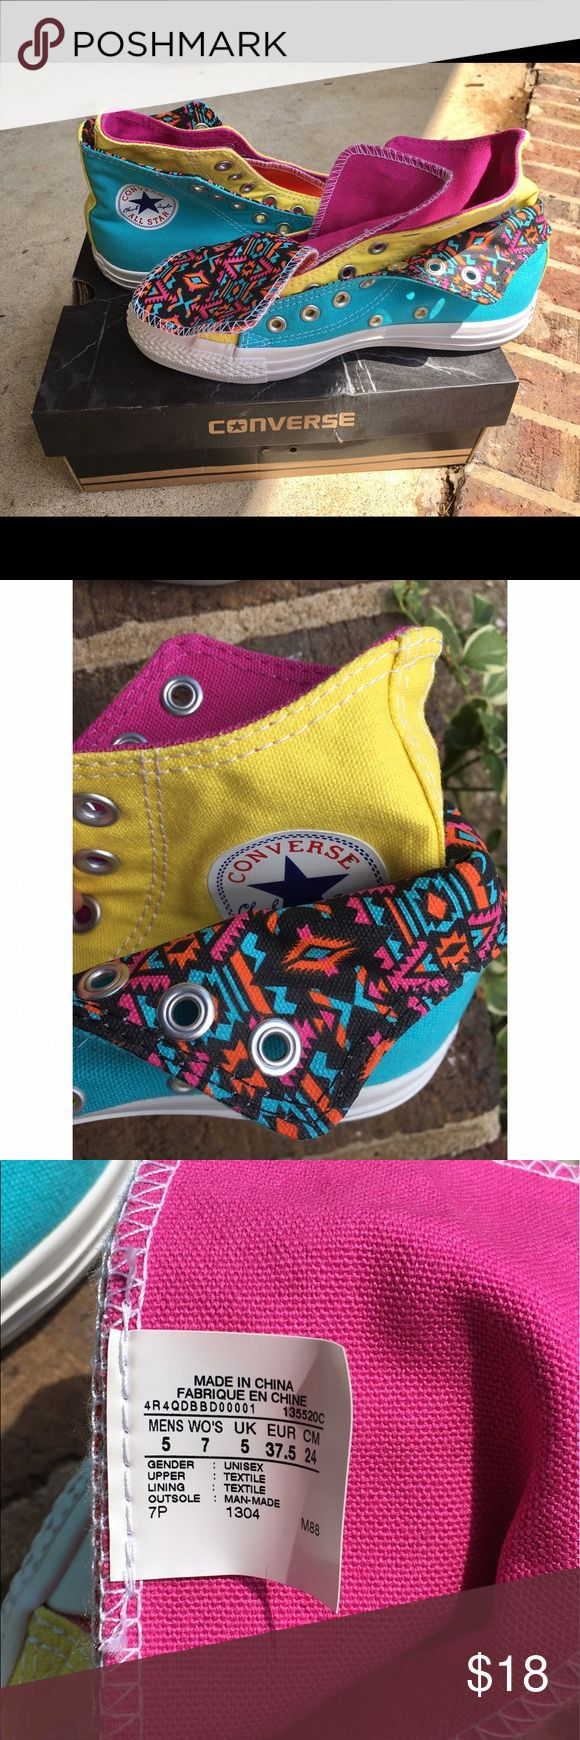 Multicolored Converse Double Tongued Shoes (size7) Never worn. Still in original box. Size 7 Converse Shoes Sneakers